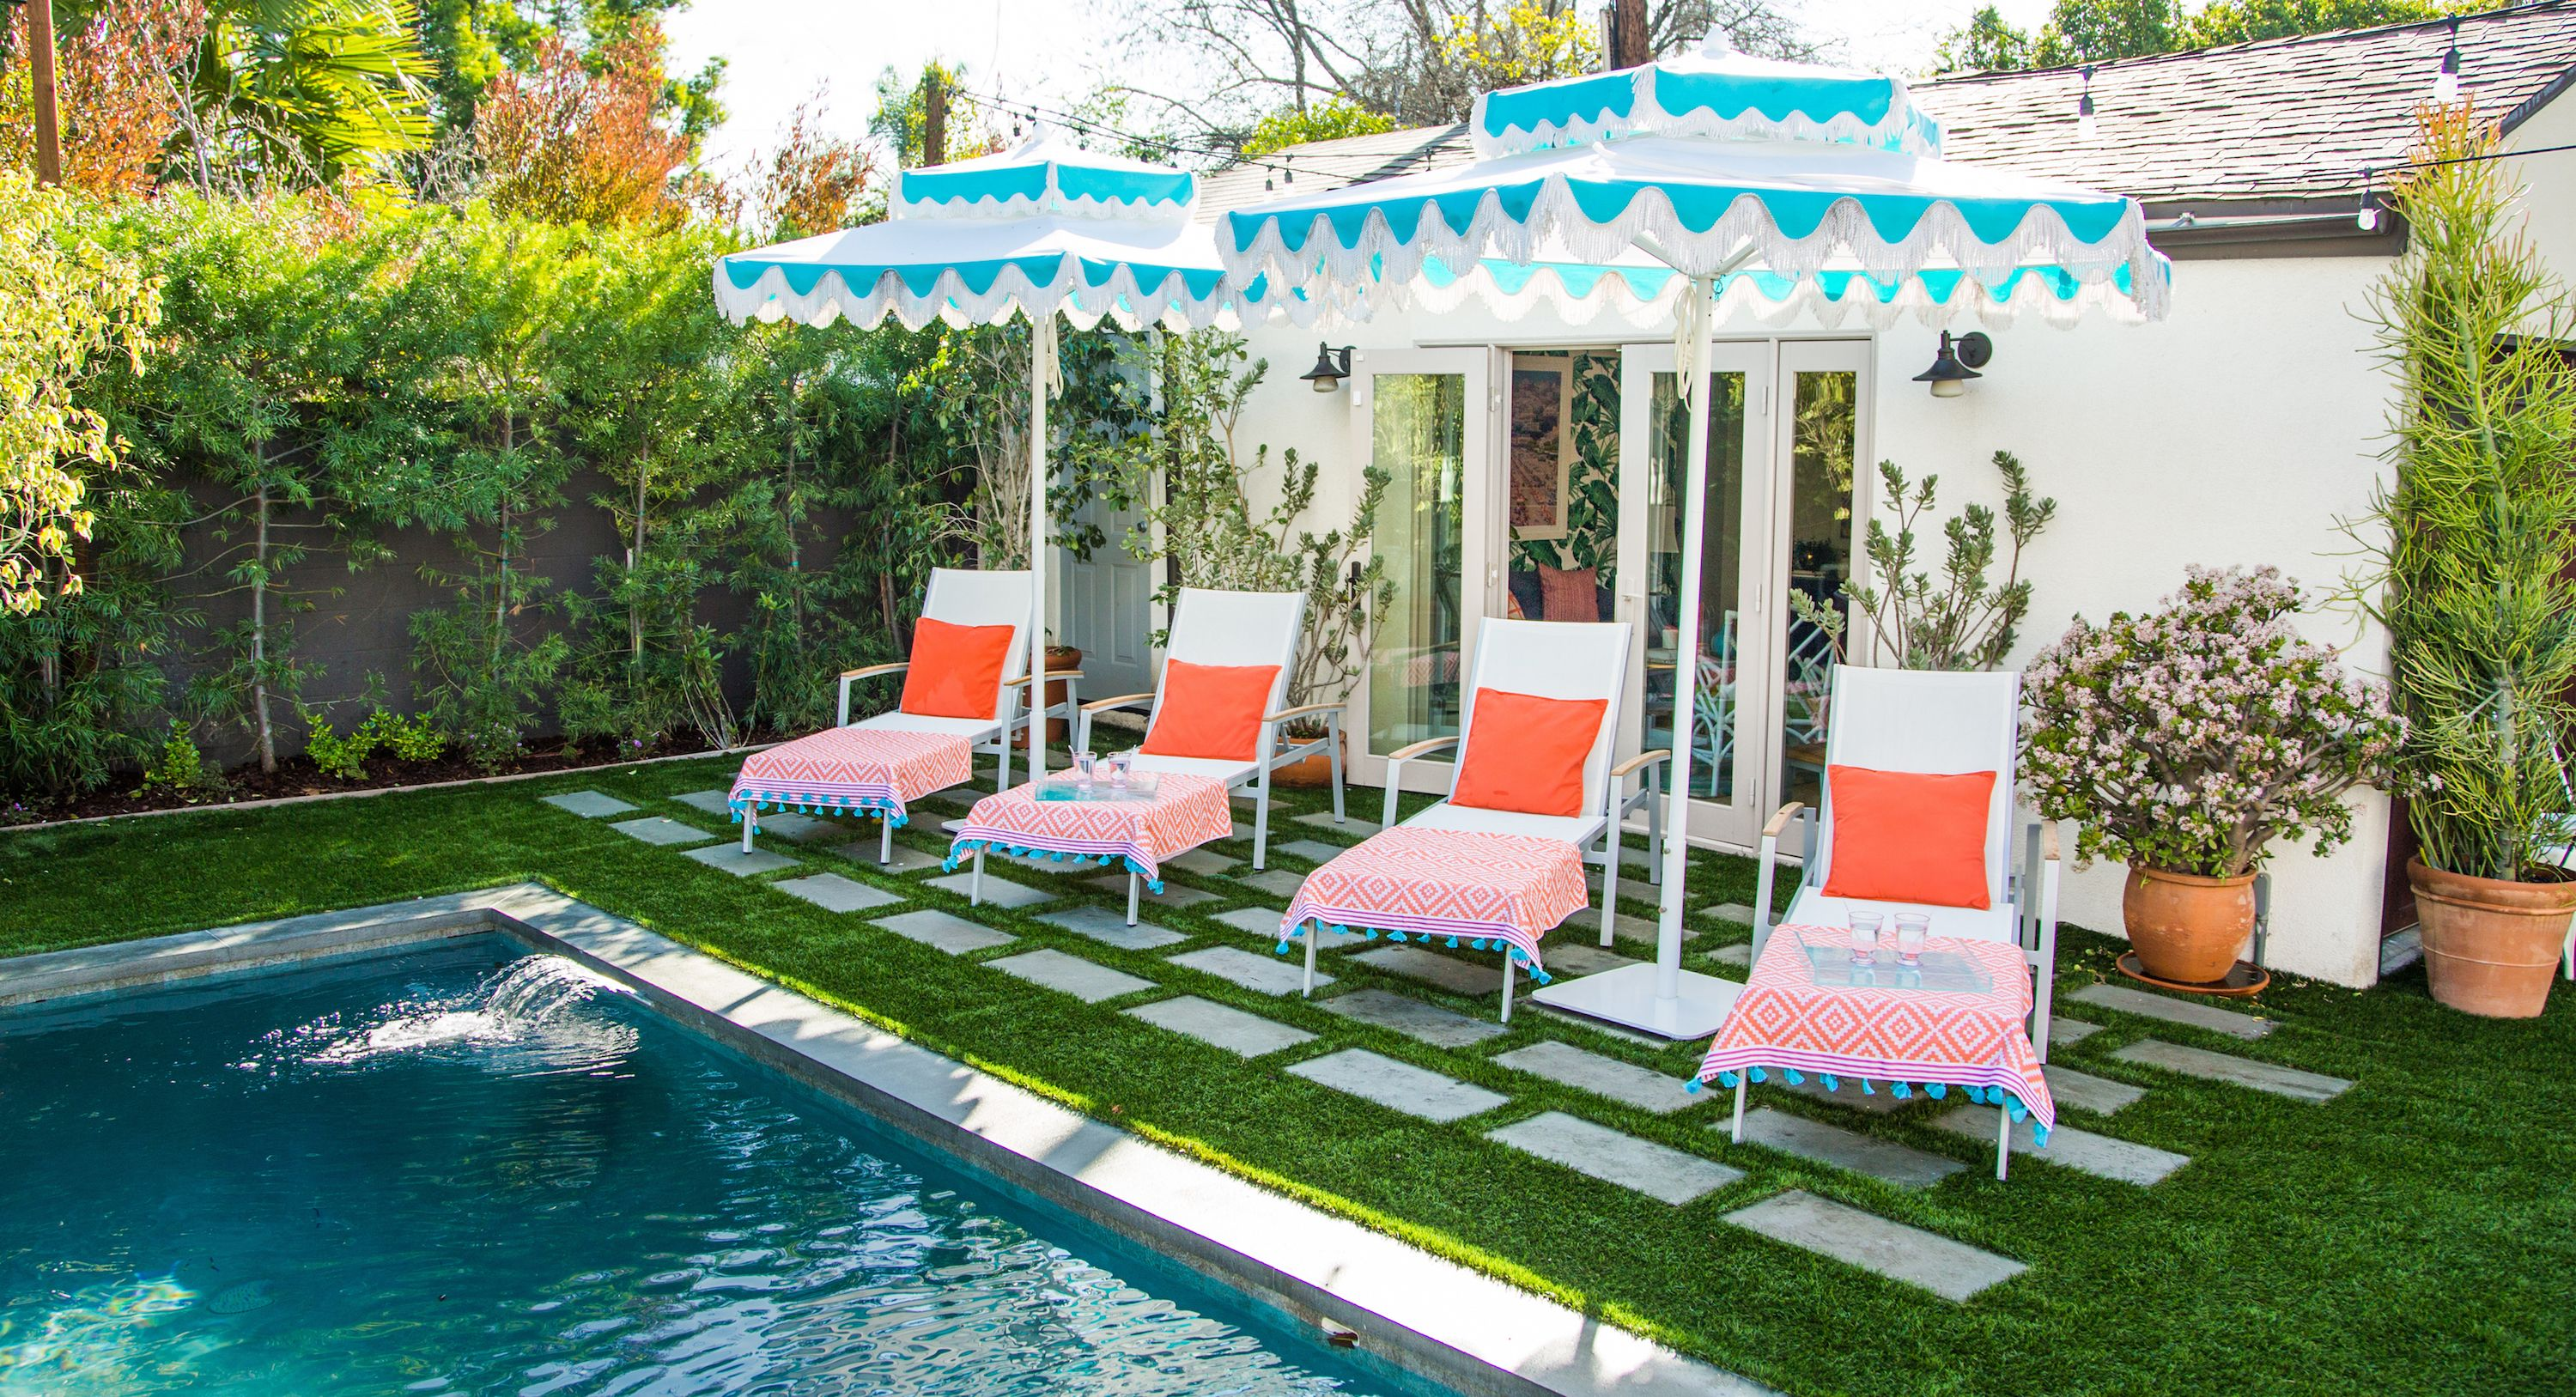 Pool Garten Amazon 35 Best Patio And Porch Design Ideas Decorating Your Outdoor Space